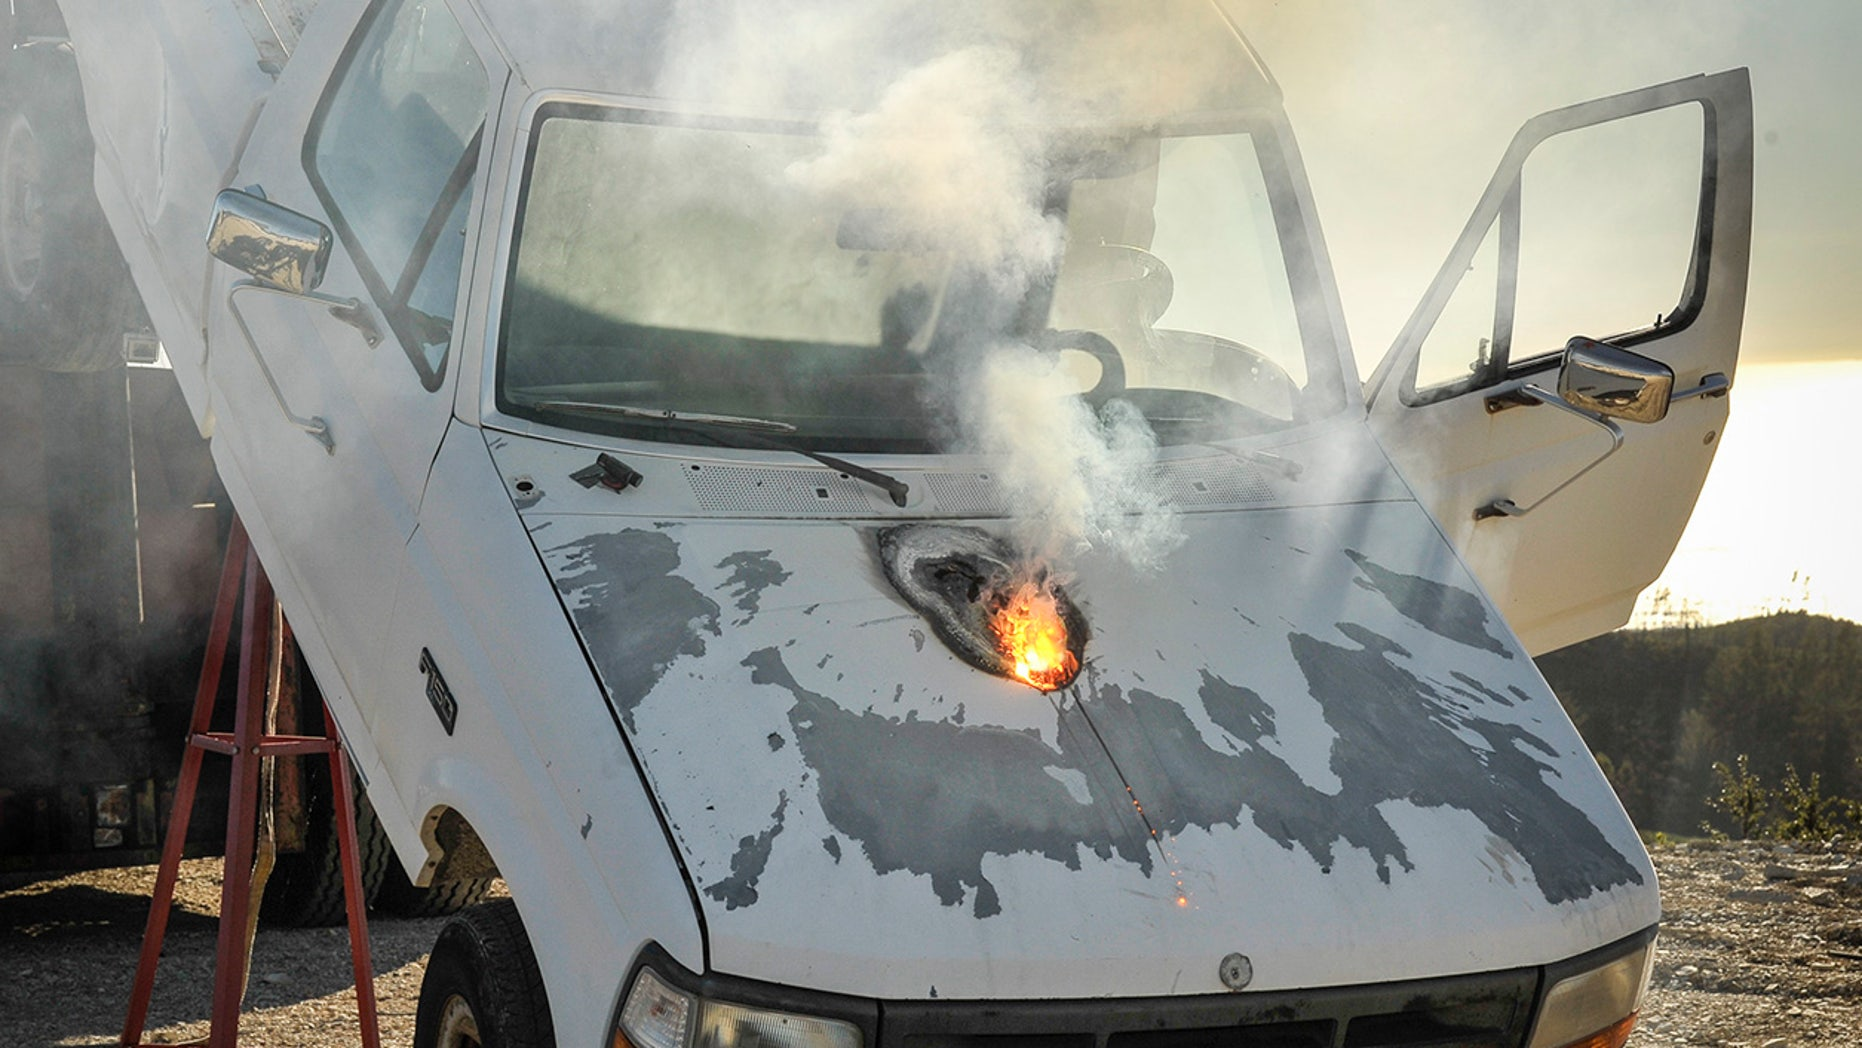 Lockheed Martin ATHENA laser weapon system defeats a truck target by disabling the engine, demonstrating its military effectiveness against enemy ground vehicles.